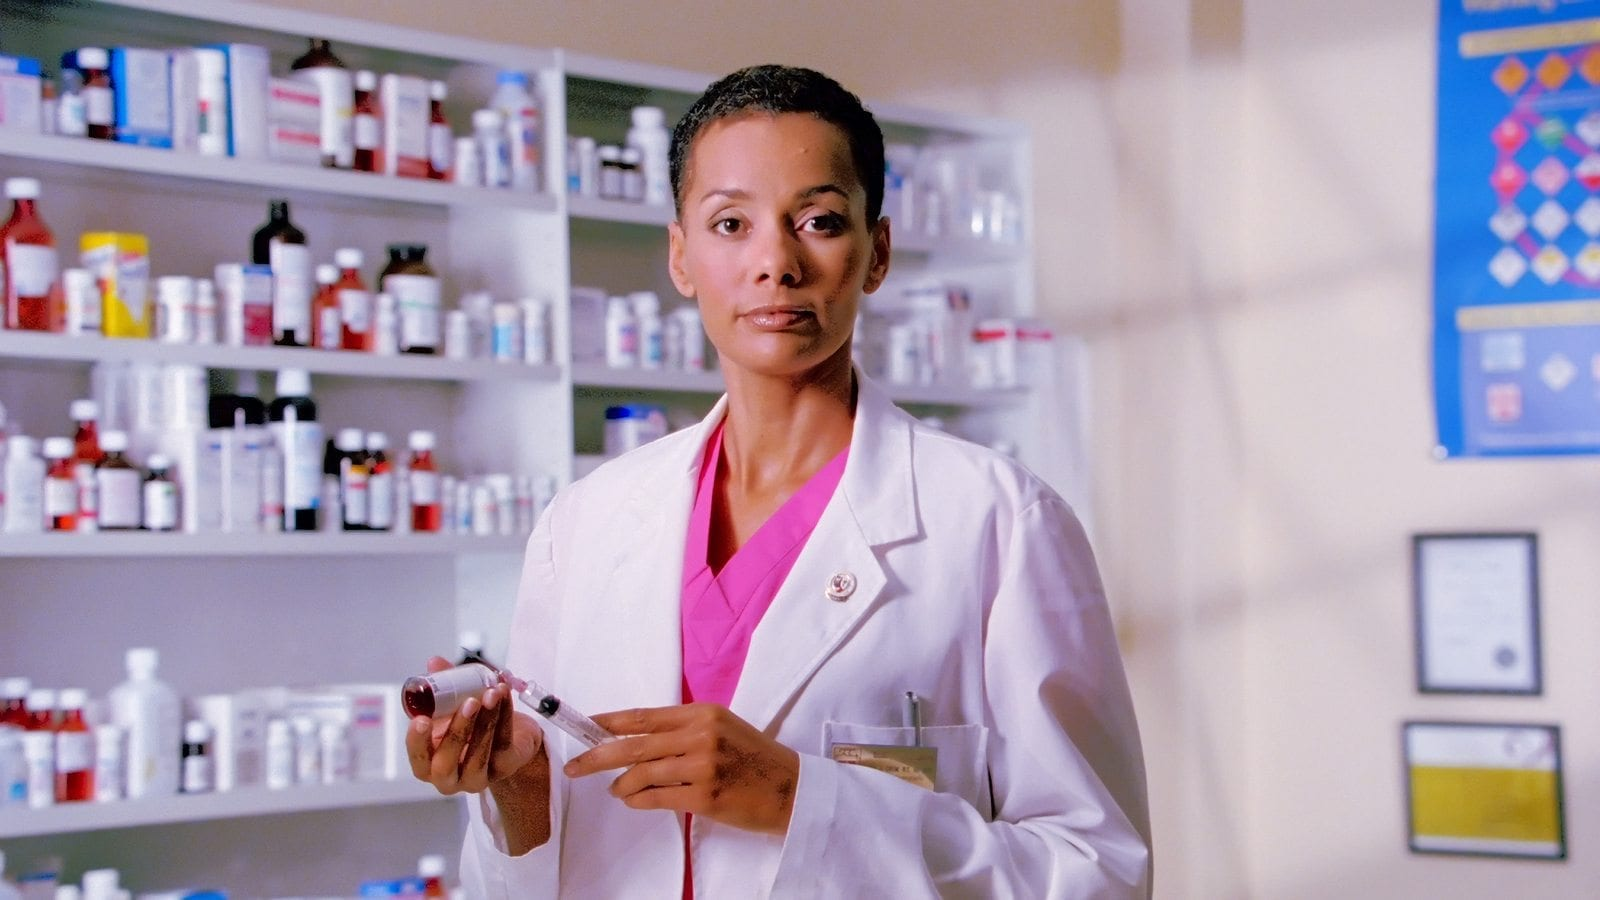 fasibility on generic pharmacy The discount pharmacy pharmacy business plan executive summary the discount pharmacy is a retail store front/mail order purveyor of prescription medications, offering reduced prices to self-pay, cash-only customers.